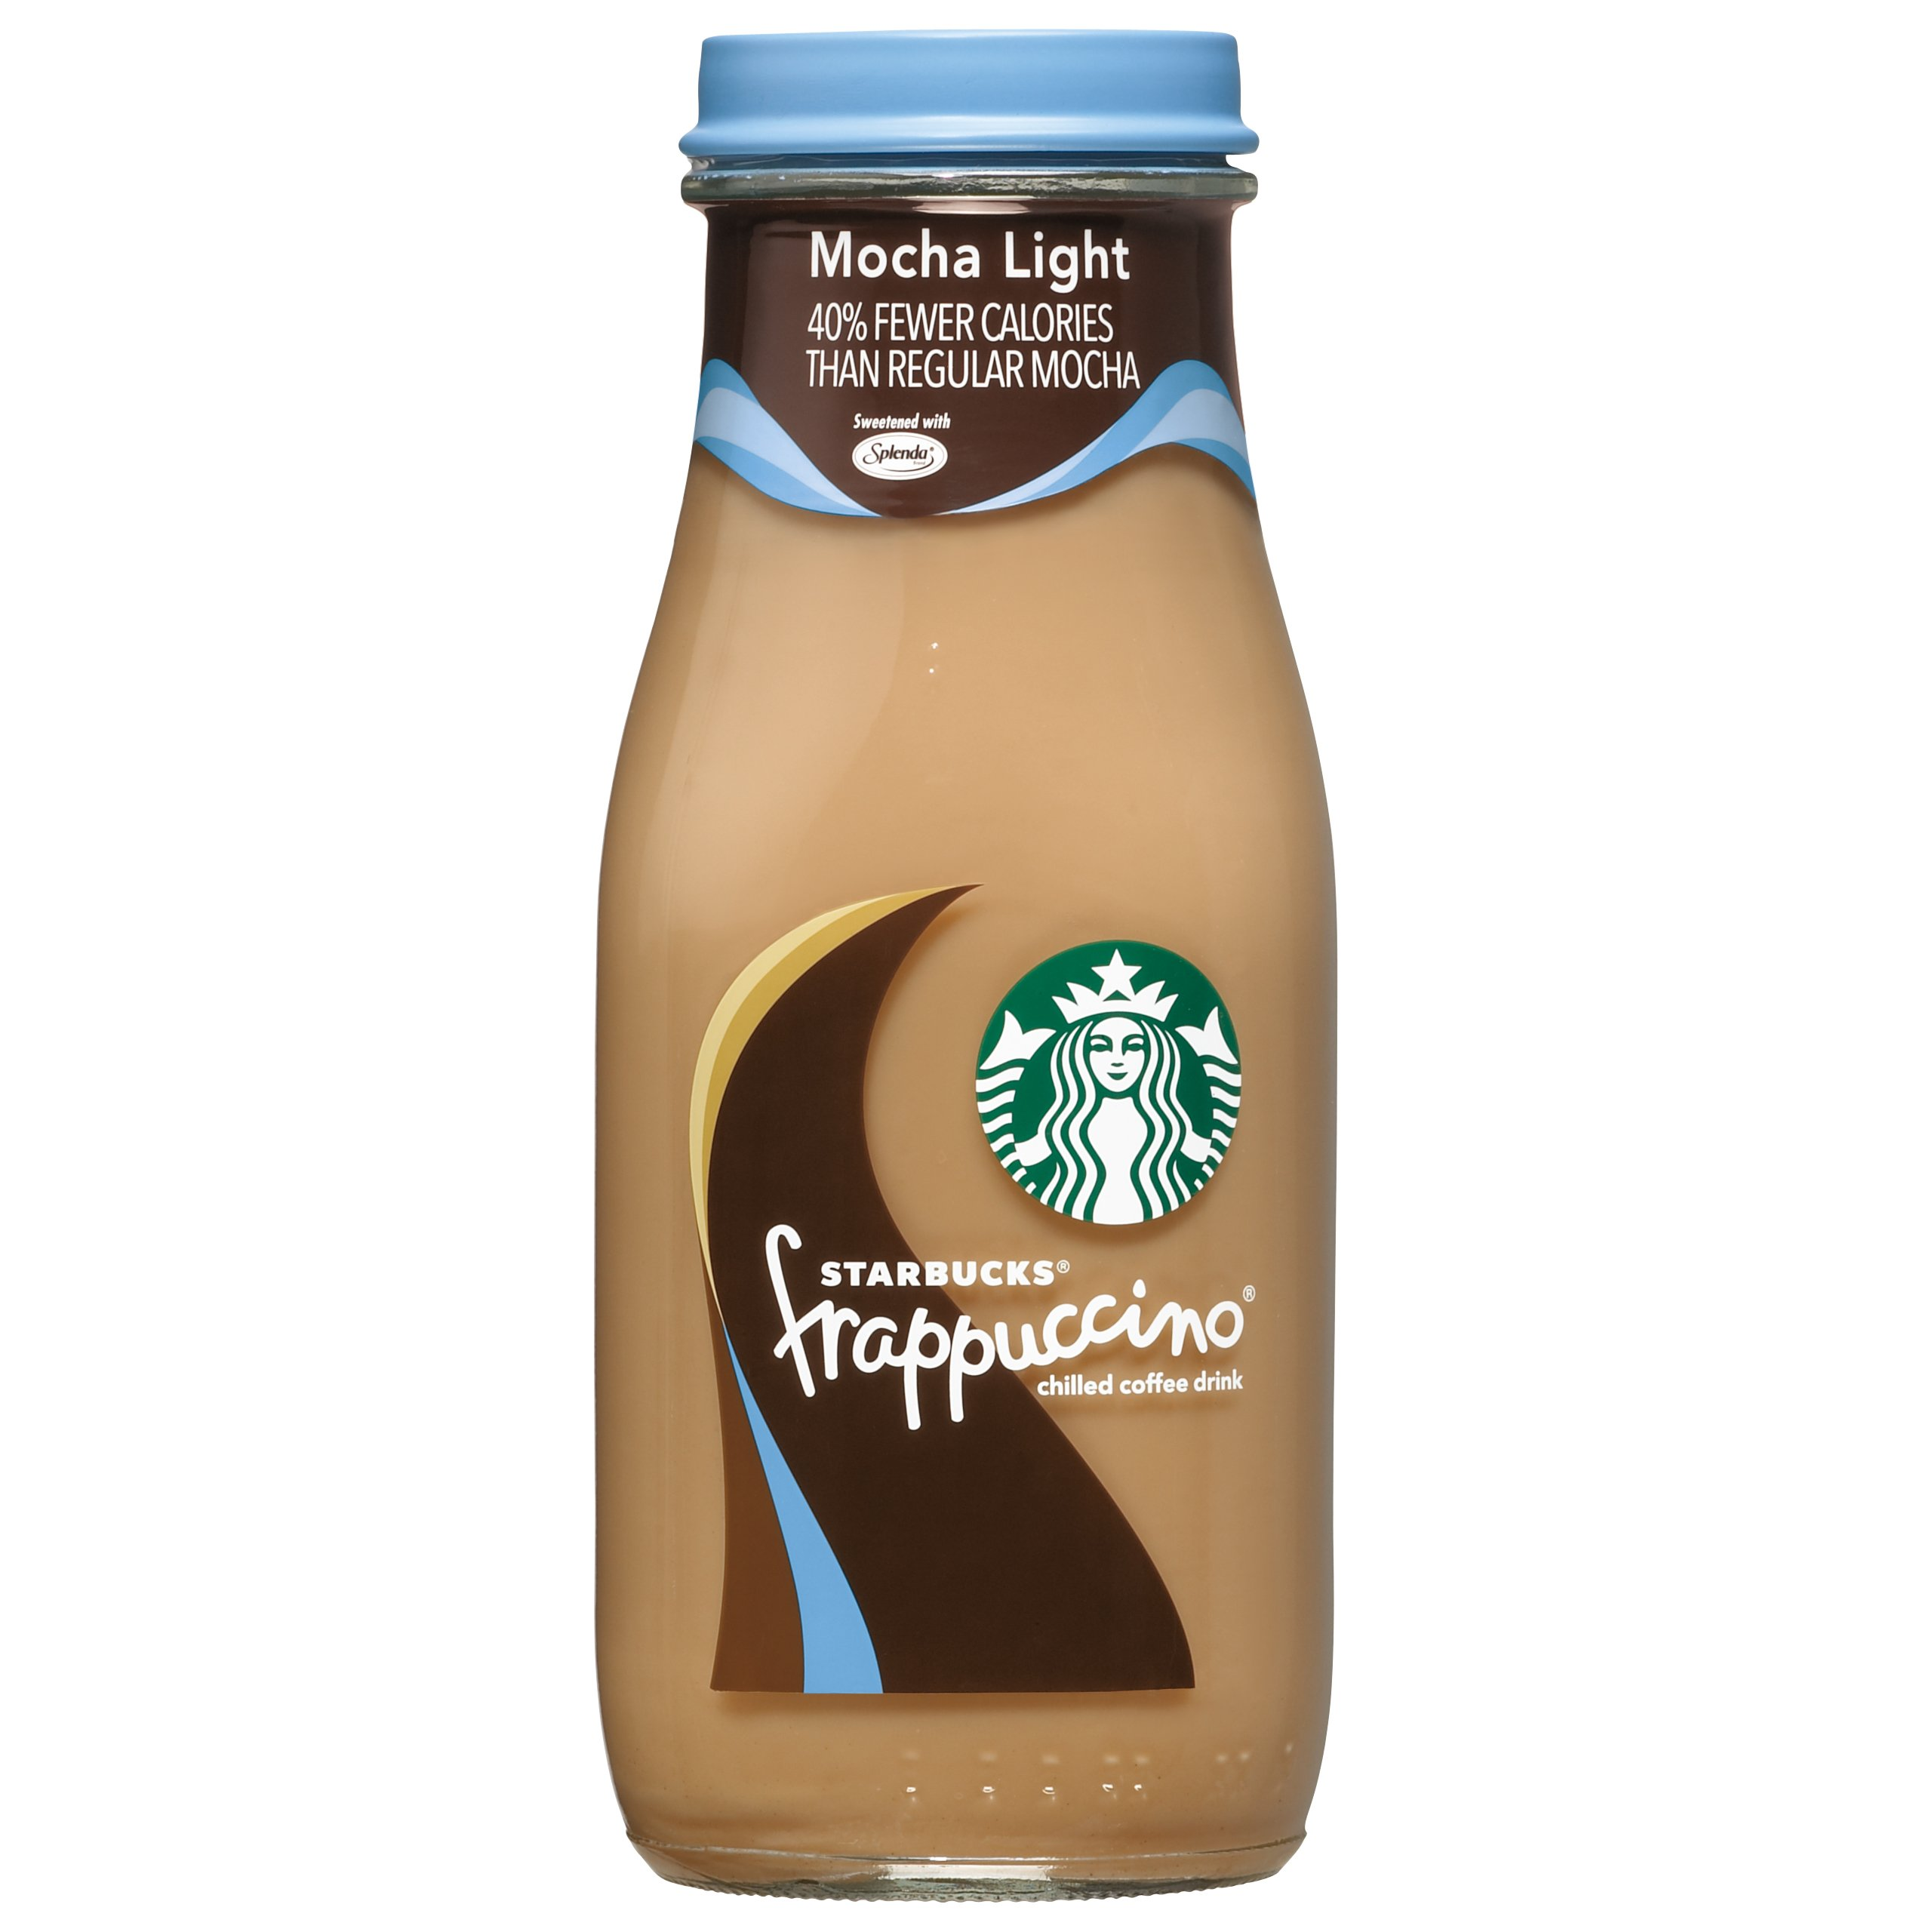 Starbucks Frappuccino, Mocha Light, 9.5 Fluid Ounce by Starbucks